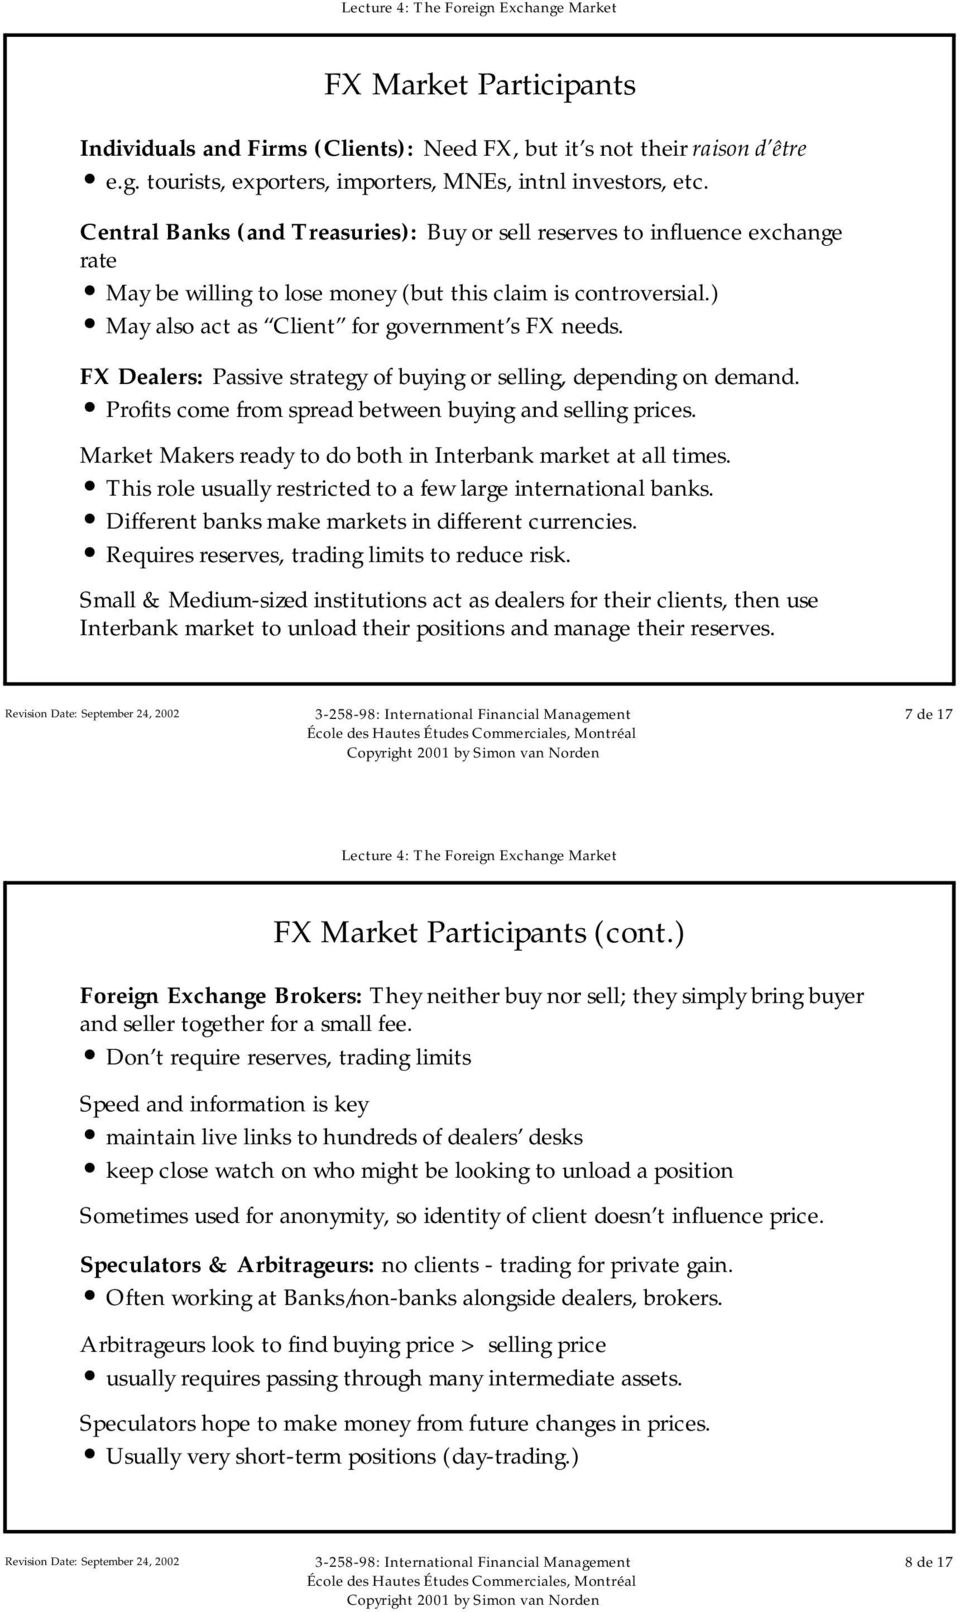 FX Dealers: Passive strategy of buying or selling, depending on demand. Profits come from spread between buying and selling prices. Market Makers ready to do both in Interbank market at all times.